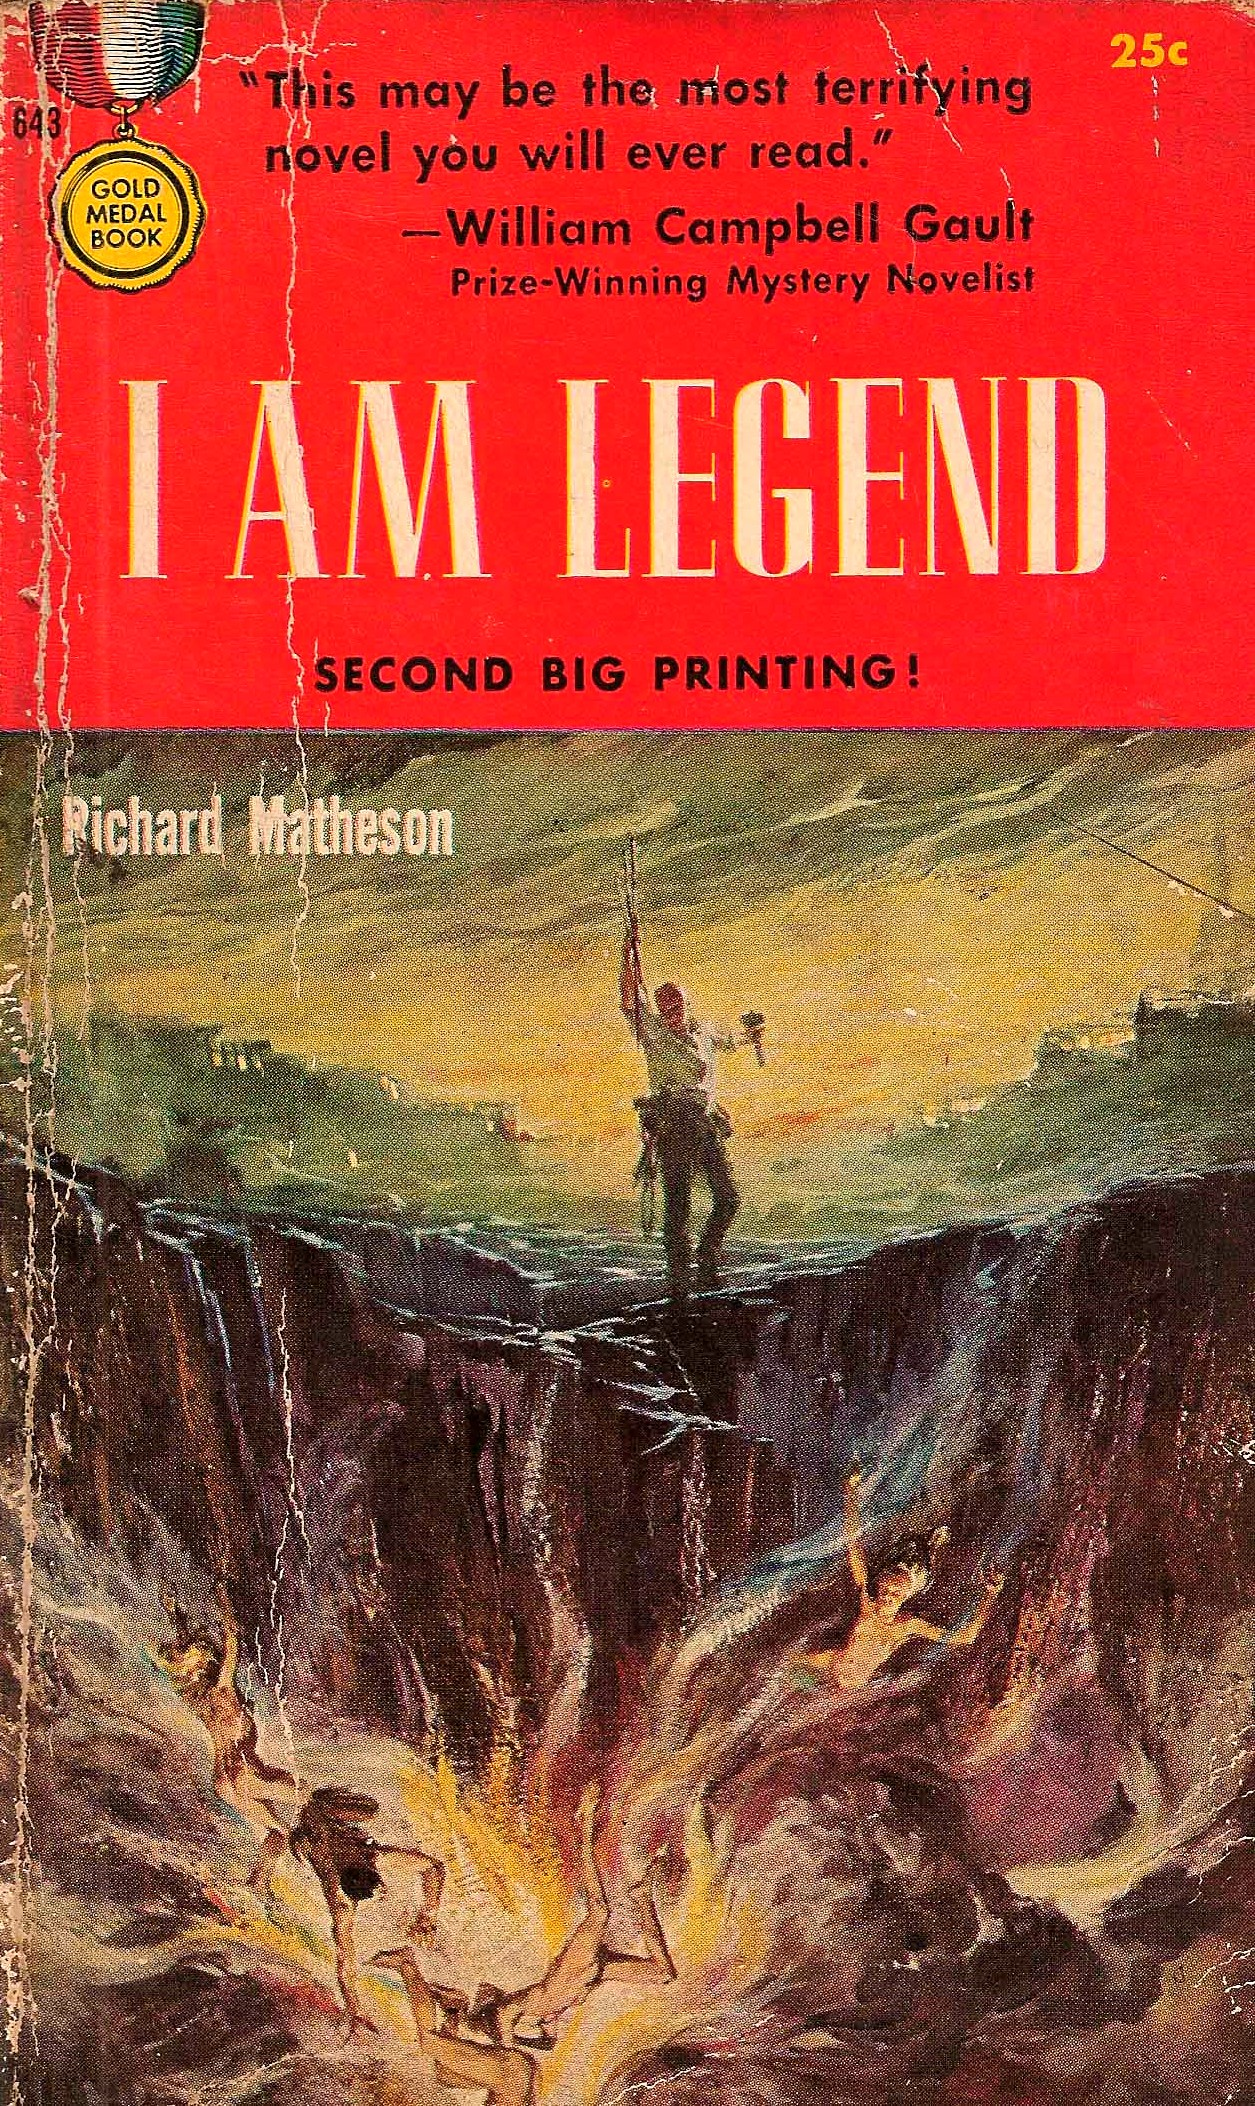 loneliness in the novel i am legend by robert neville I am legend photos view all photos (35) i am legend quotes  robert neville: all right, let me tell you about your god's plan six billion people on earth when the infection hit kv had a.